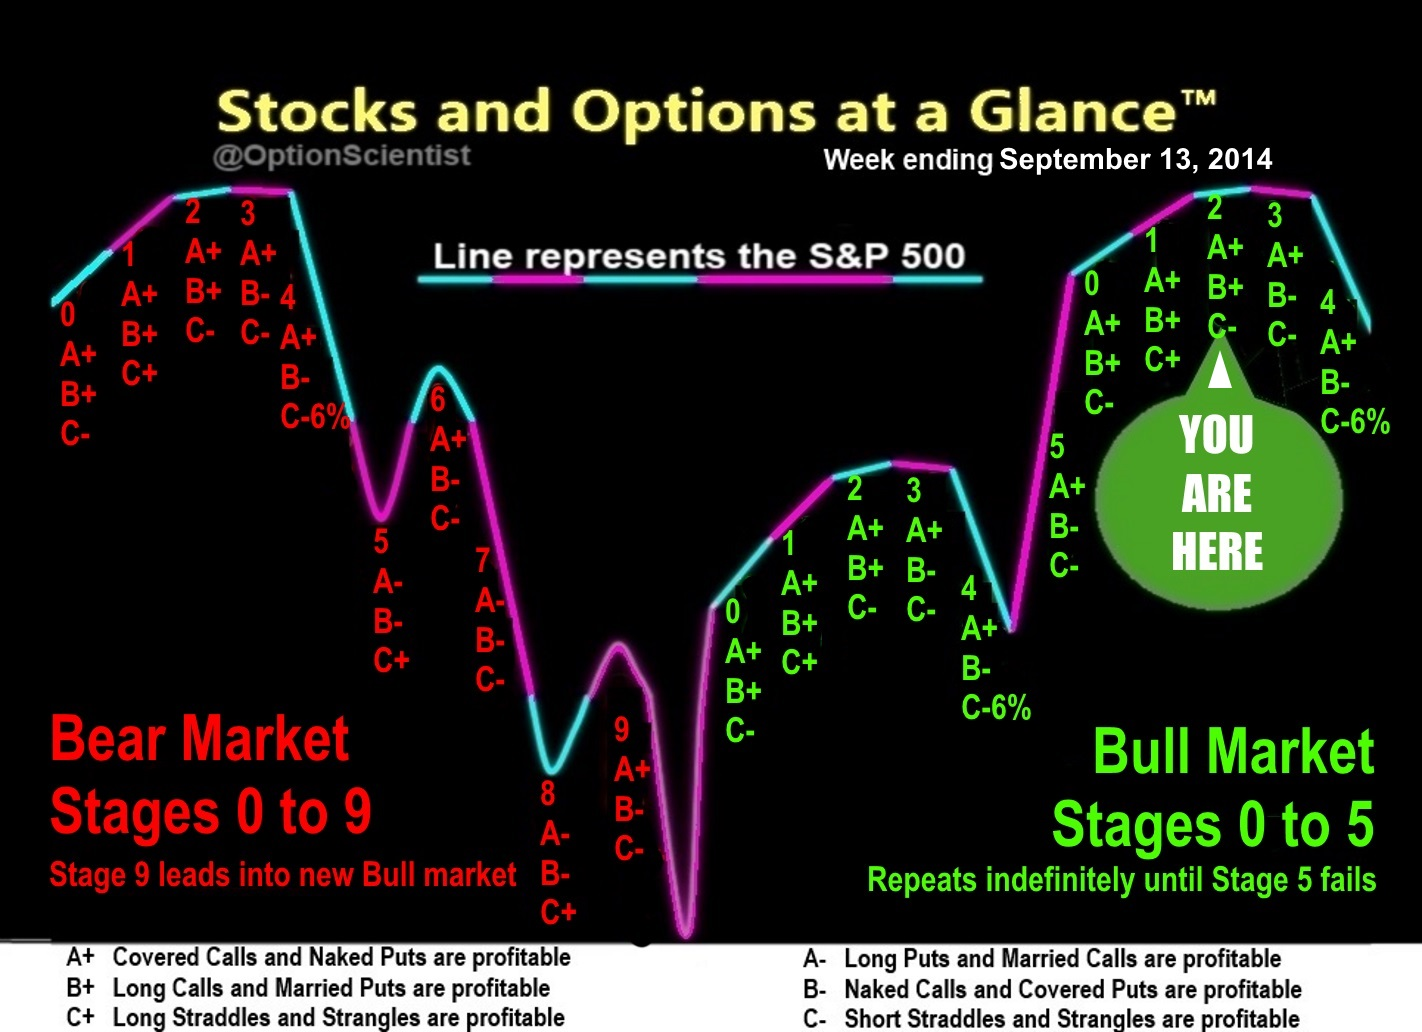 Stock market options prices